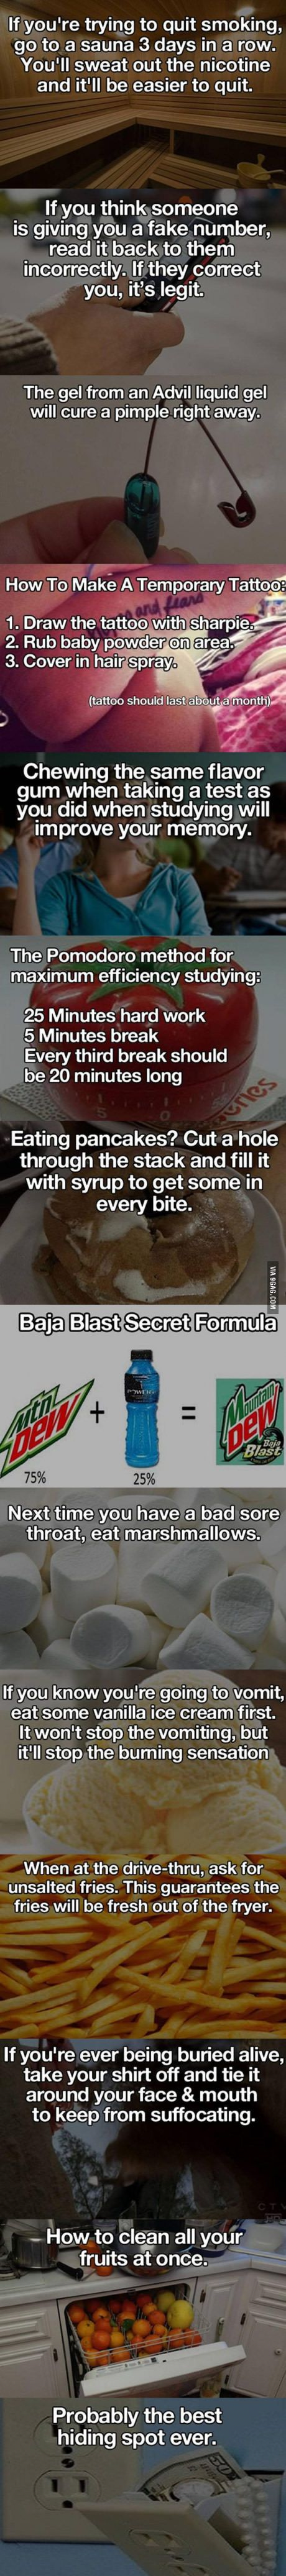 Unique Teen Life Hacks Ideas On Pinterest College Hacks - 20 genius life hacks for anyone on a tight budget